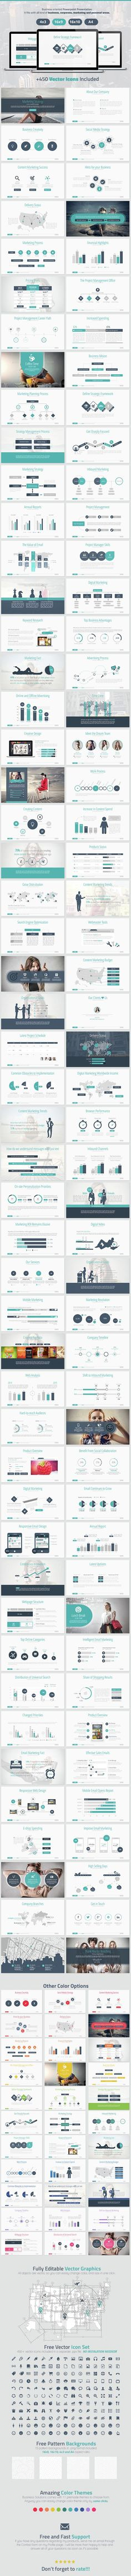 Marketing Strategy Powerpoint Presentation Template #slides Download here: http://graphicriver.net/item/marketing-strategy-powerpoint-presentation/14614905?ref=ksioks